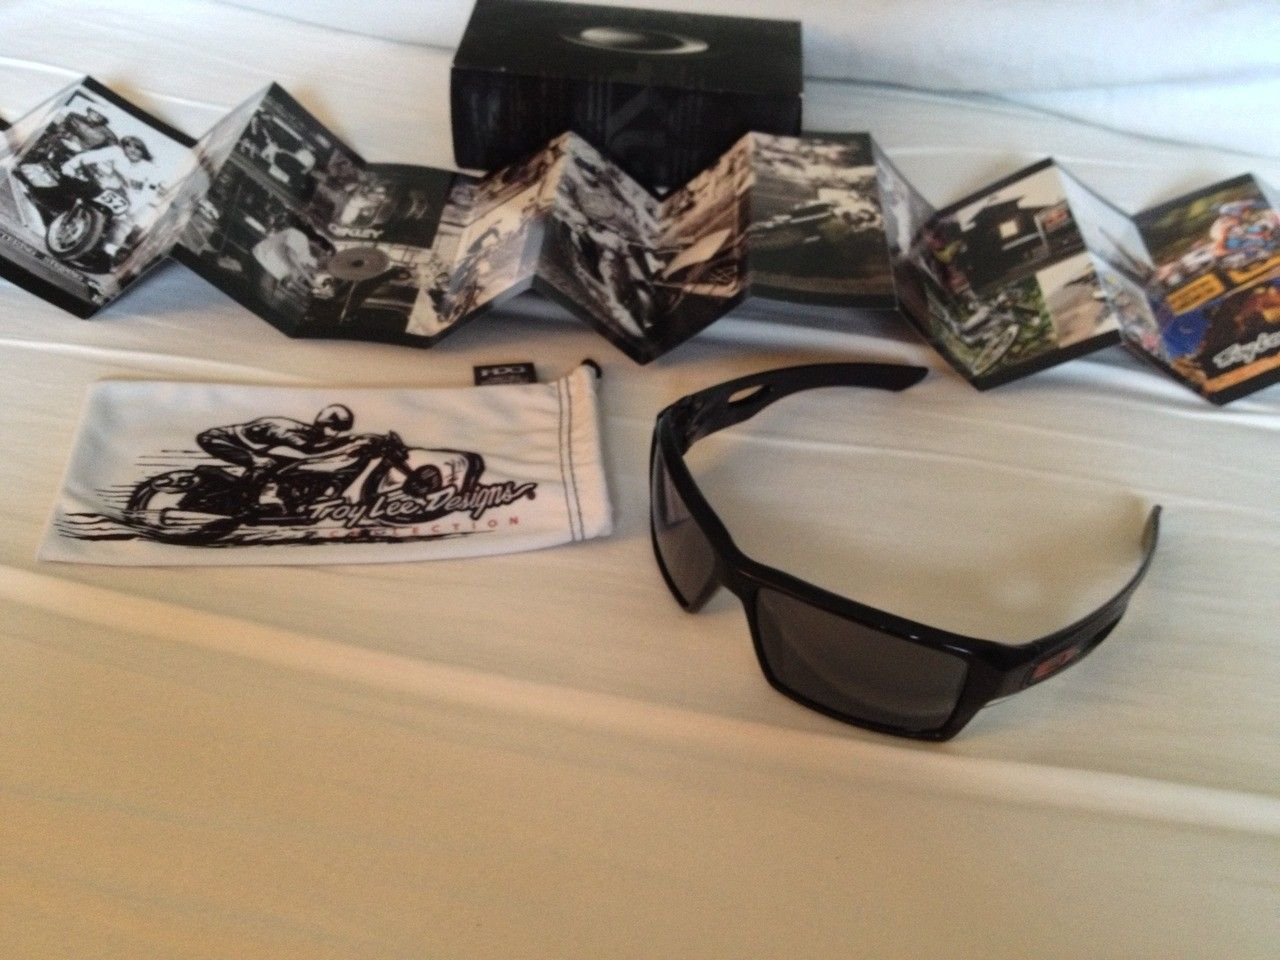 Troy Lee Designs Eyepatch 2 - tumblr_mbyc5bfKMX1rbptugo5_1280.jpg